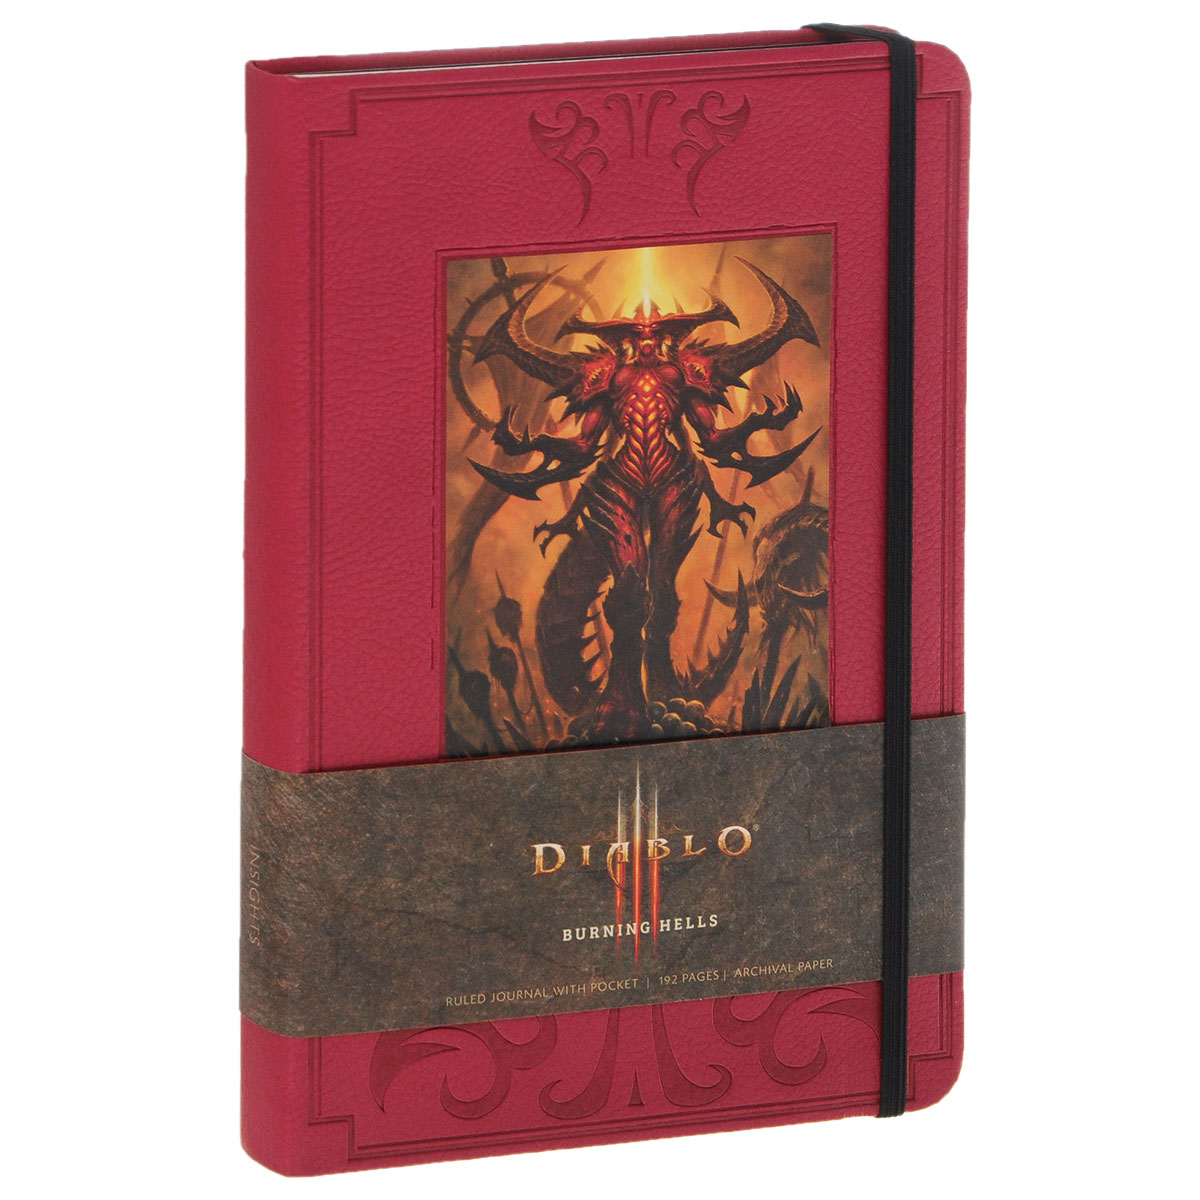 Diablo Burning Hells: Hardcover Ruled Journal hard cover creative cartoon stationery notebook ruled lined bullet journal bujo